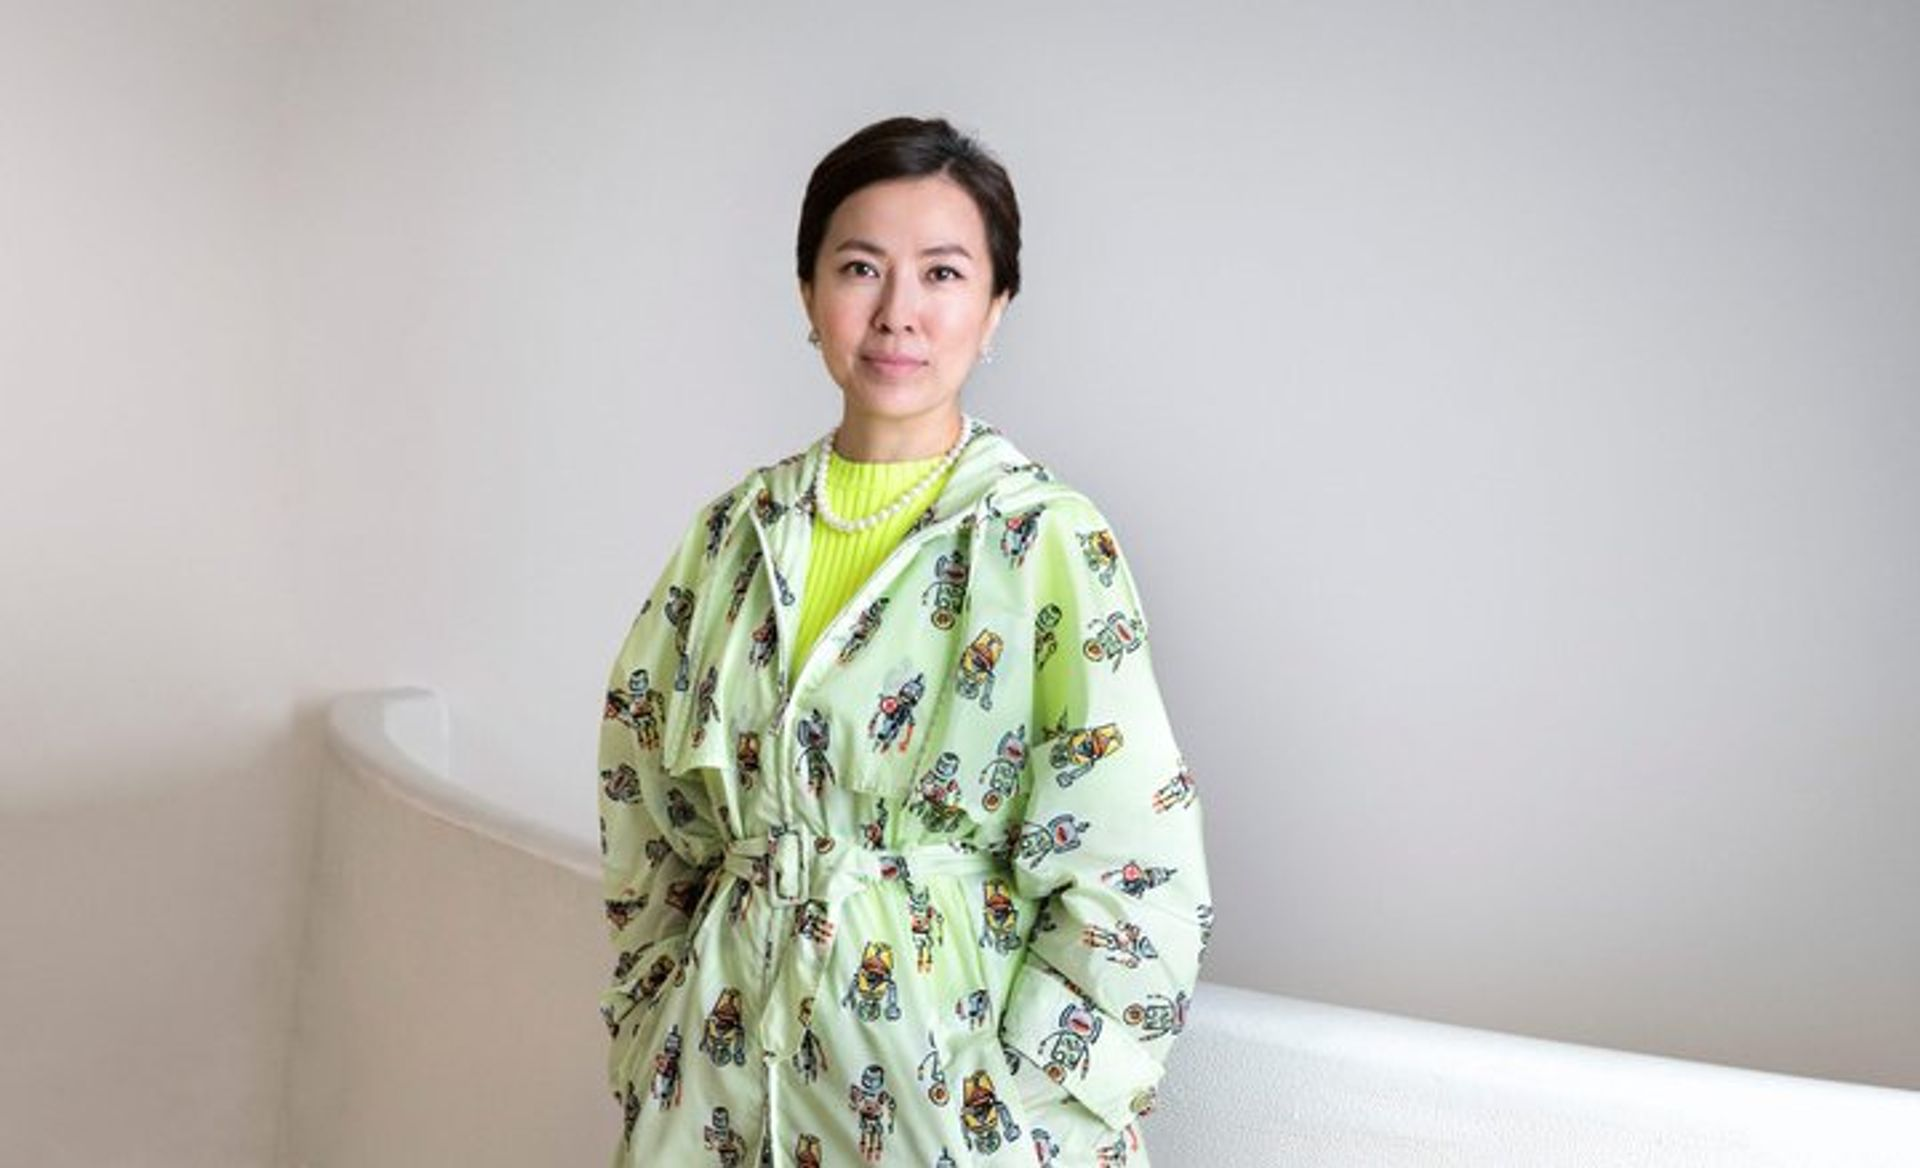 The Korean artist Anicka Yi has been selected to take over the Turbine Hall at Tate Modern this autumn Photo credit: David Heald